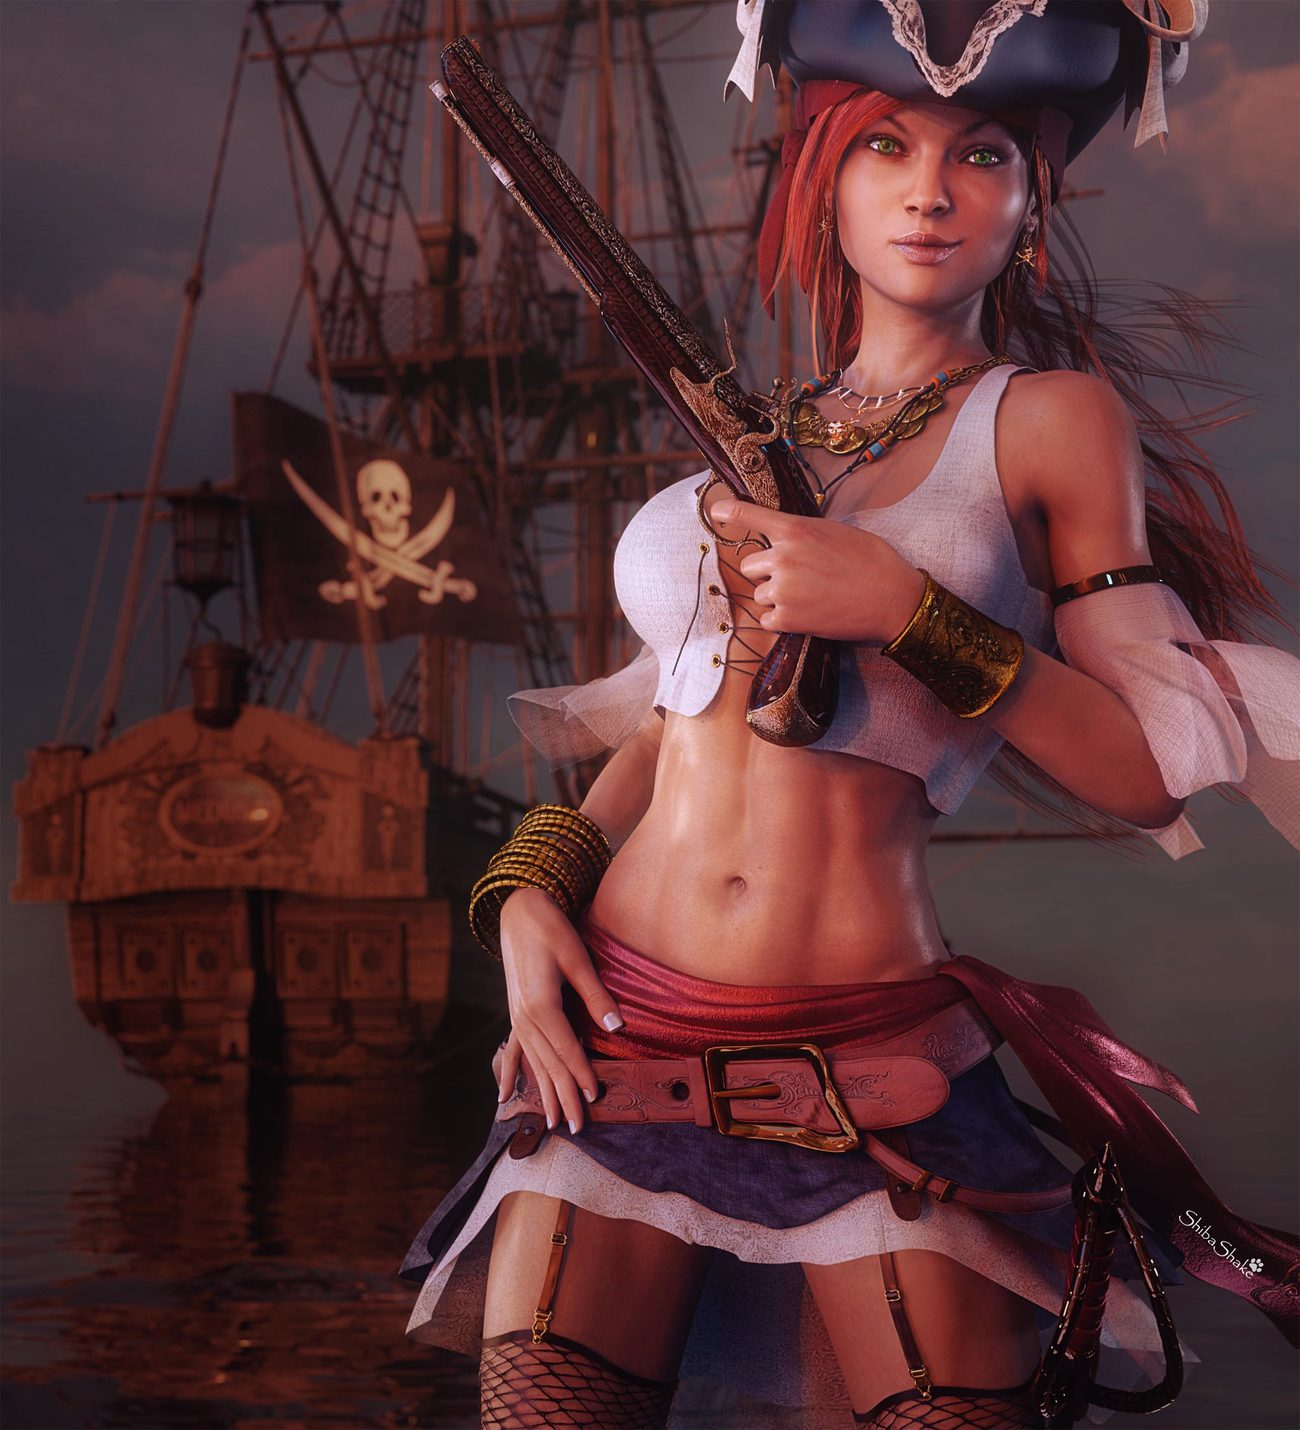 Pirate Girl Fantasy Art